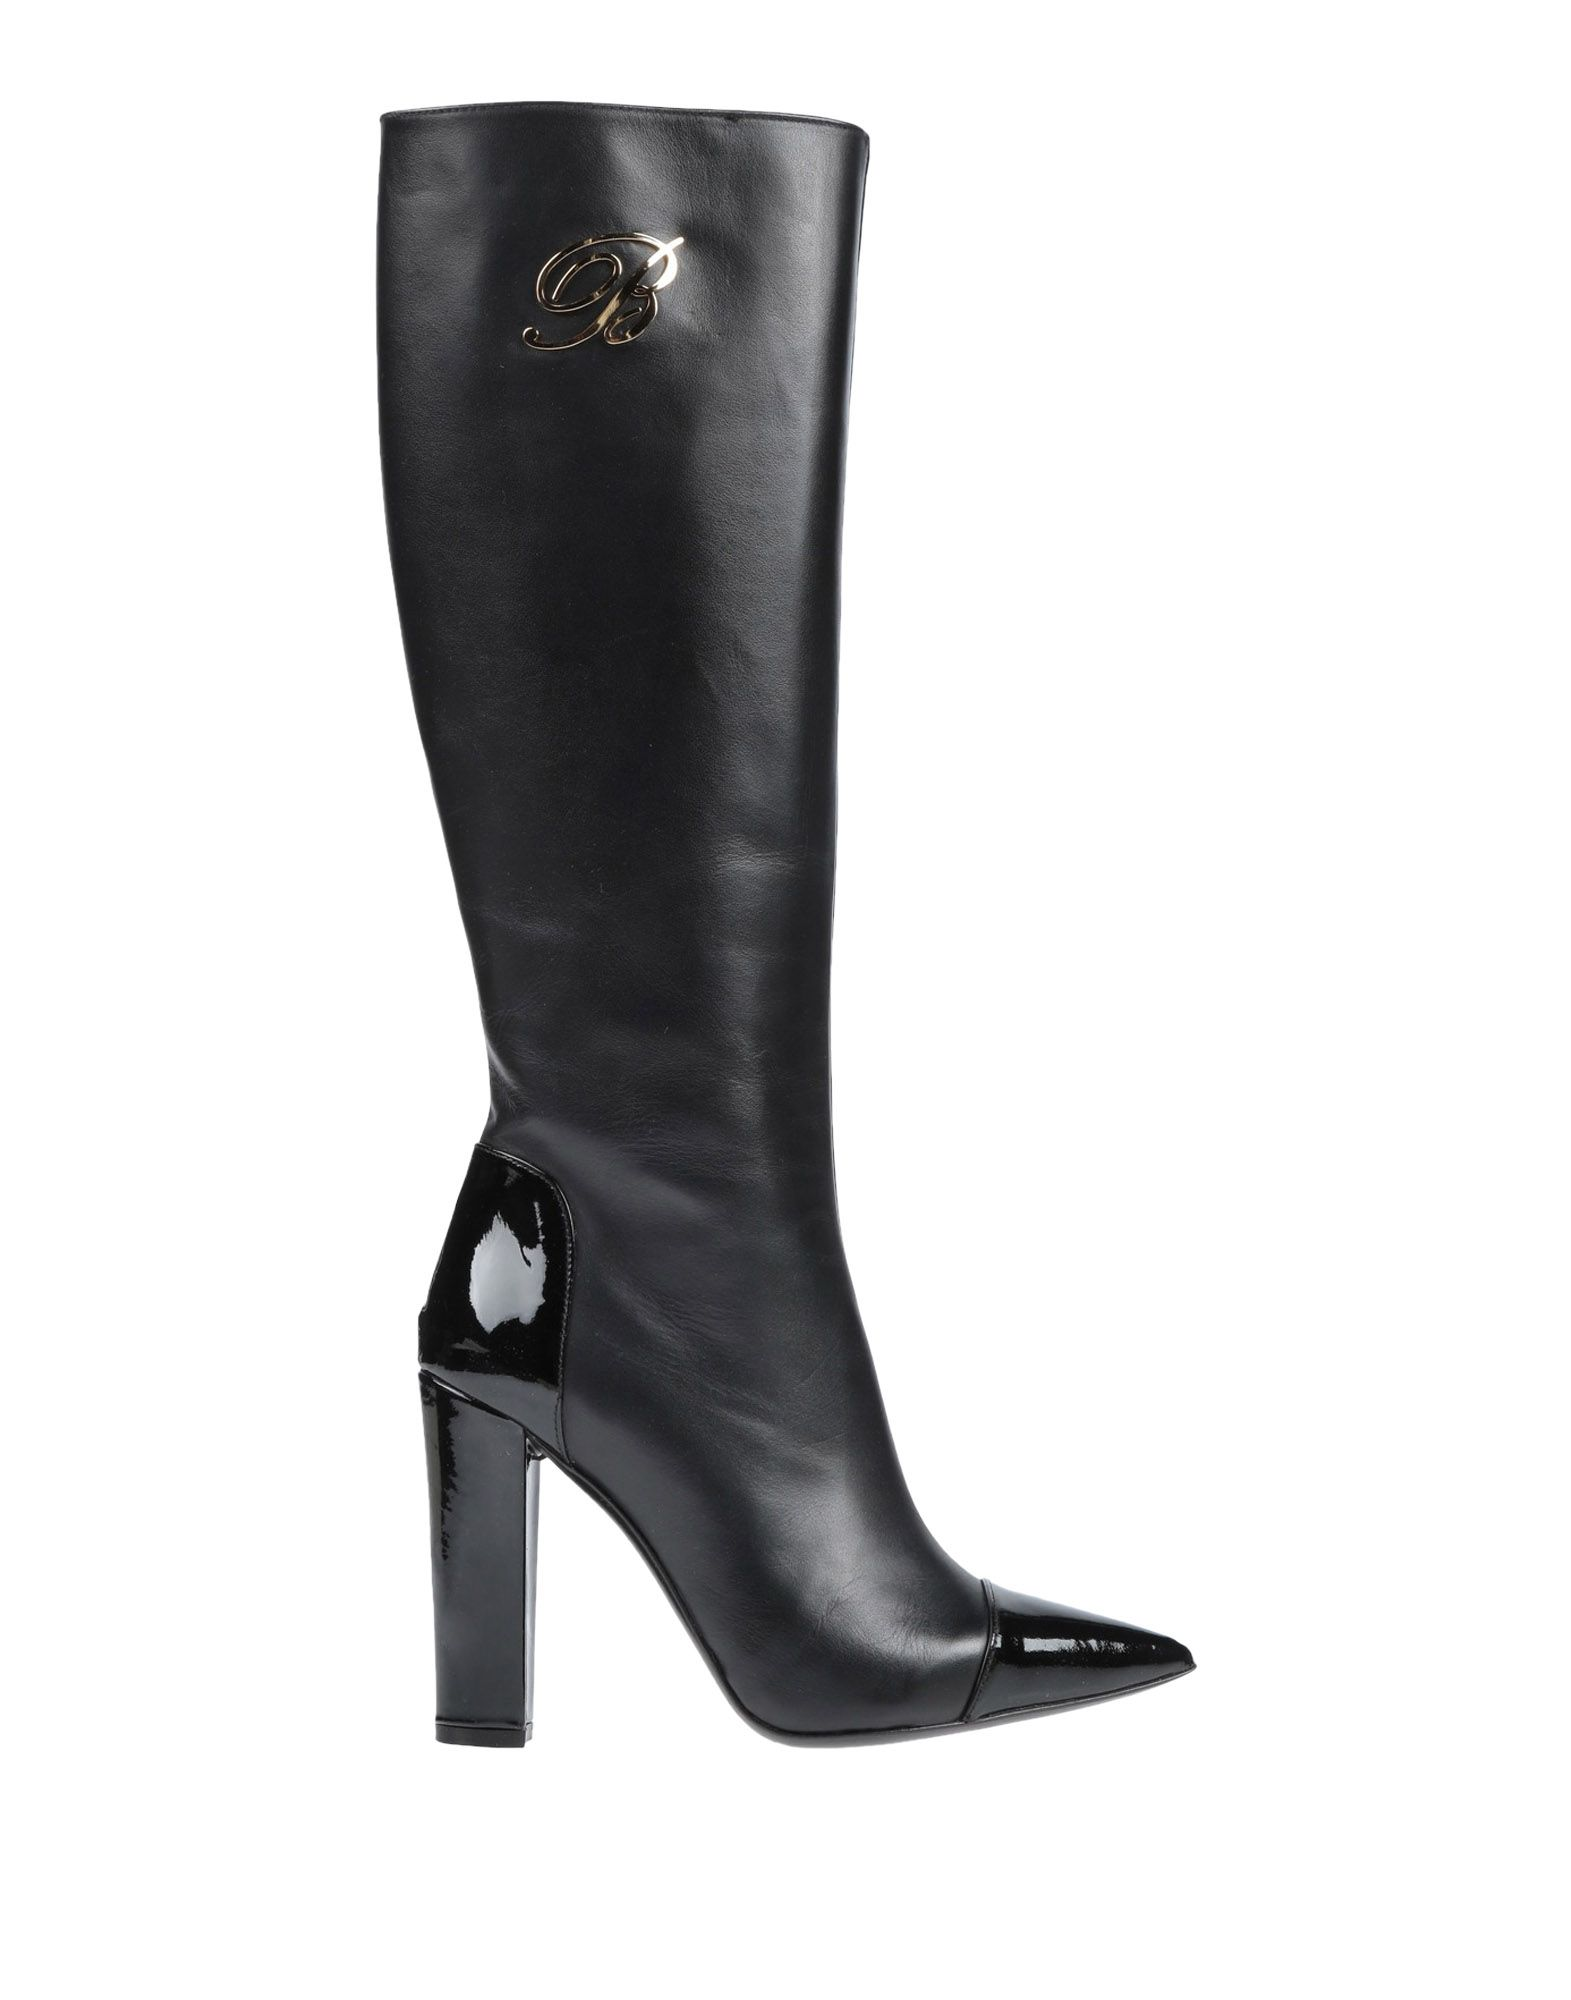 Blumarine Boots - on Women Blumarine Boots online on -  Canada - 11526067EM ed9901